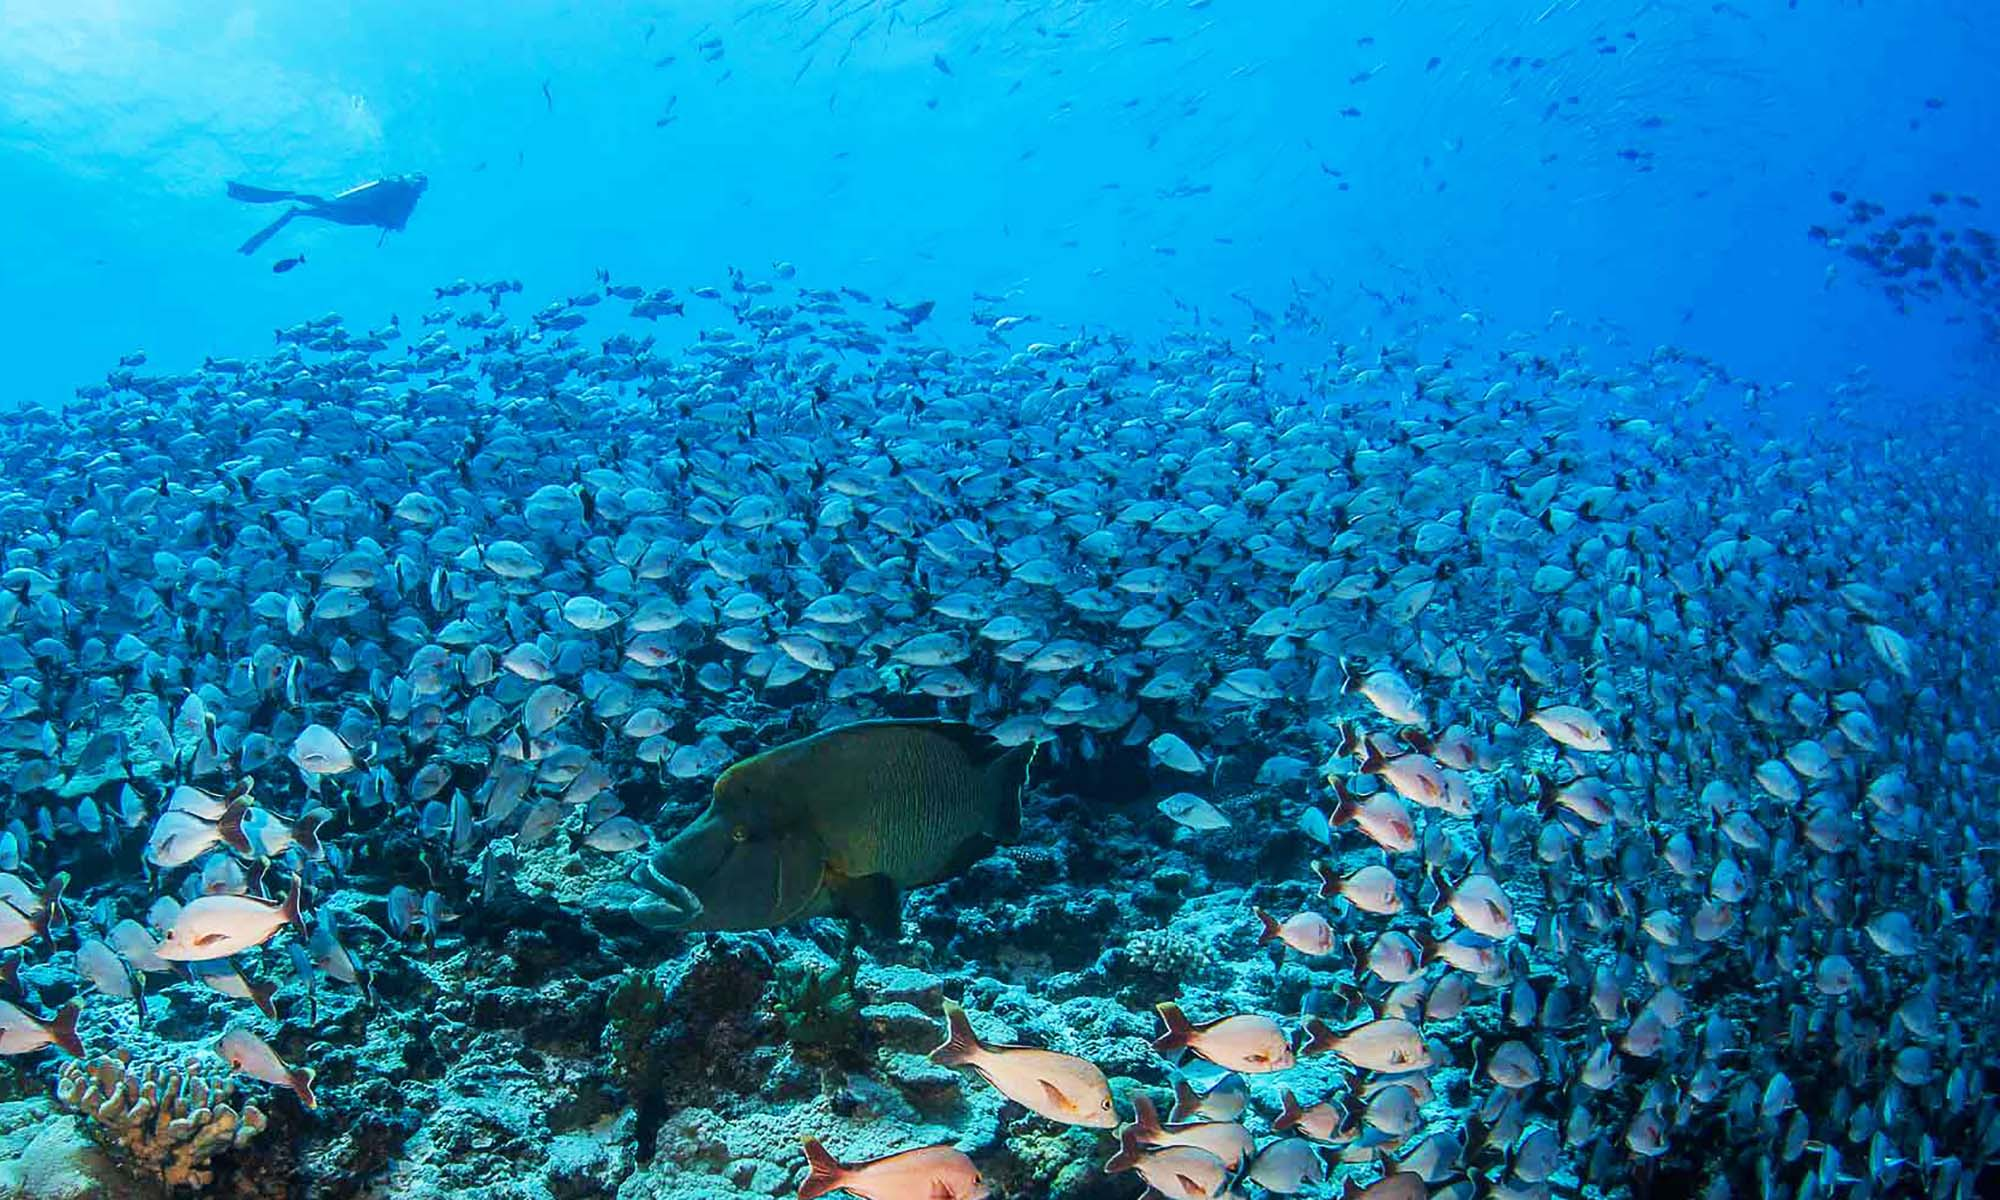 Dive amongst massive schools of fish in the famous passes of Rangiroa